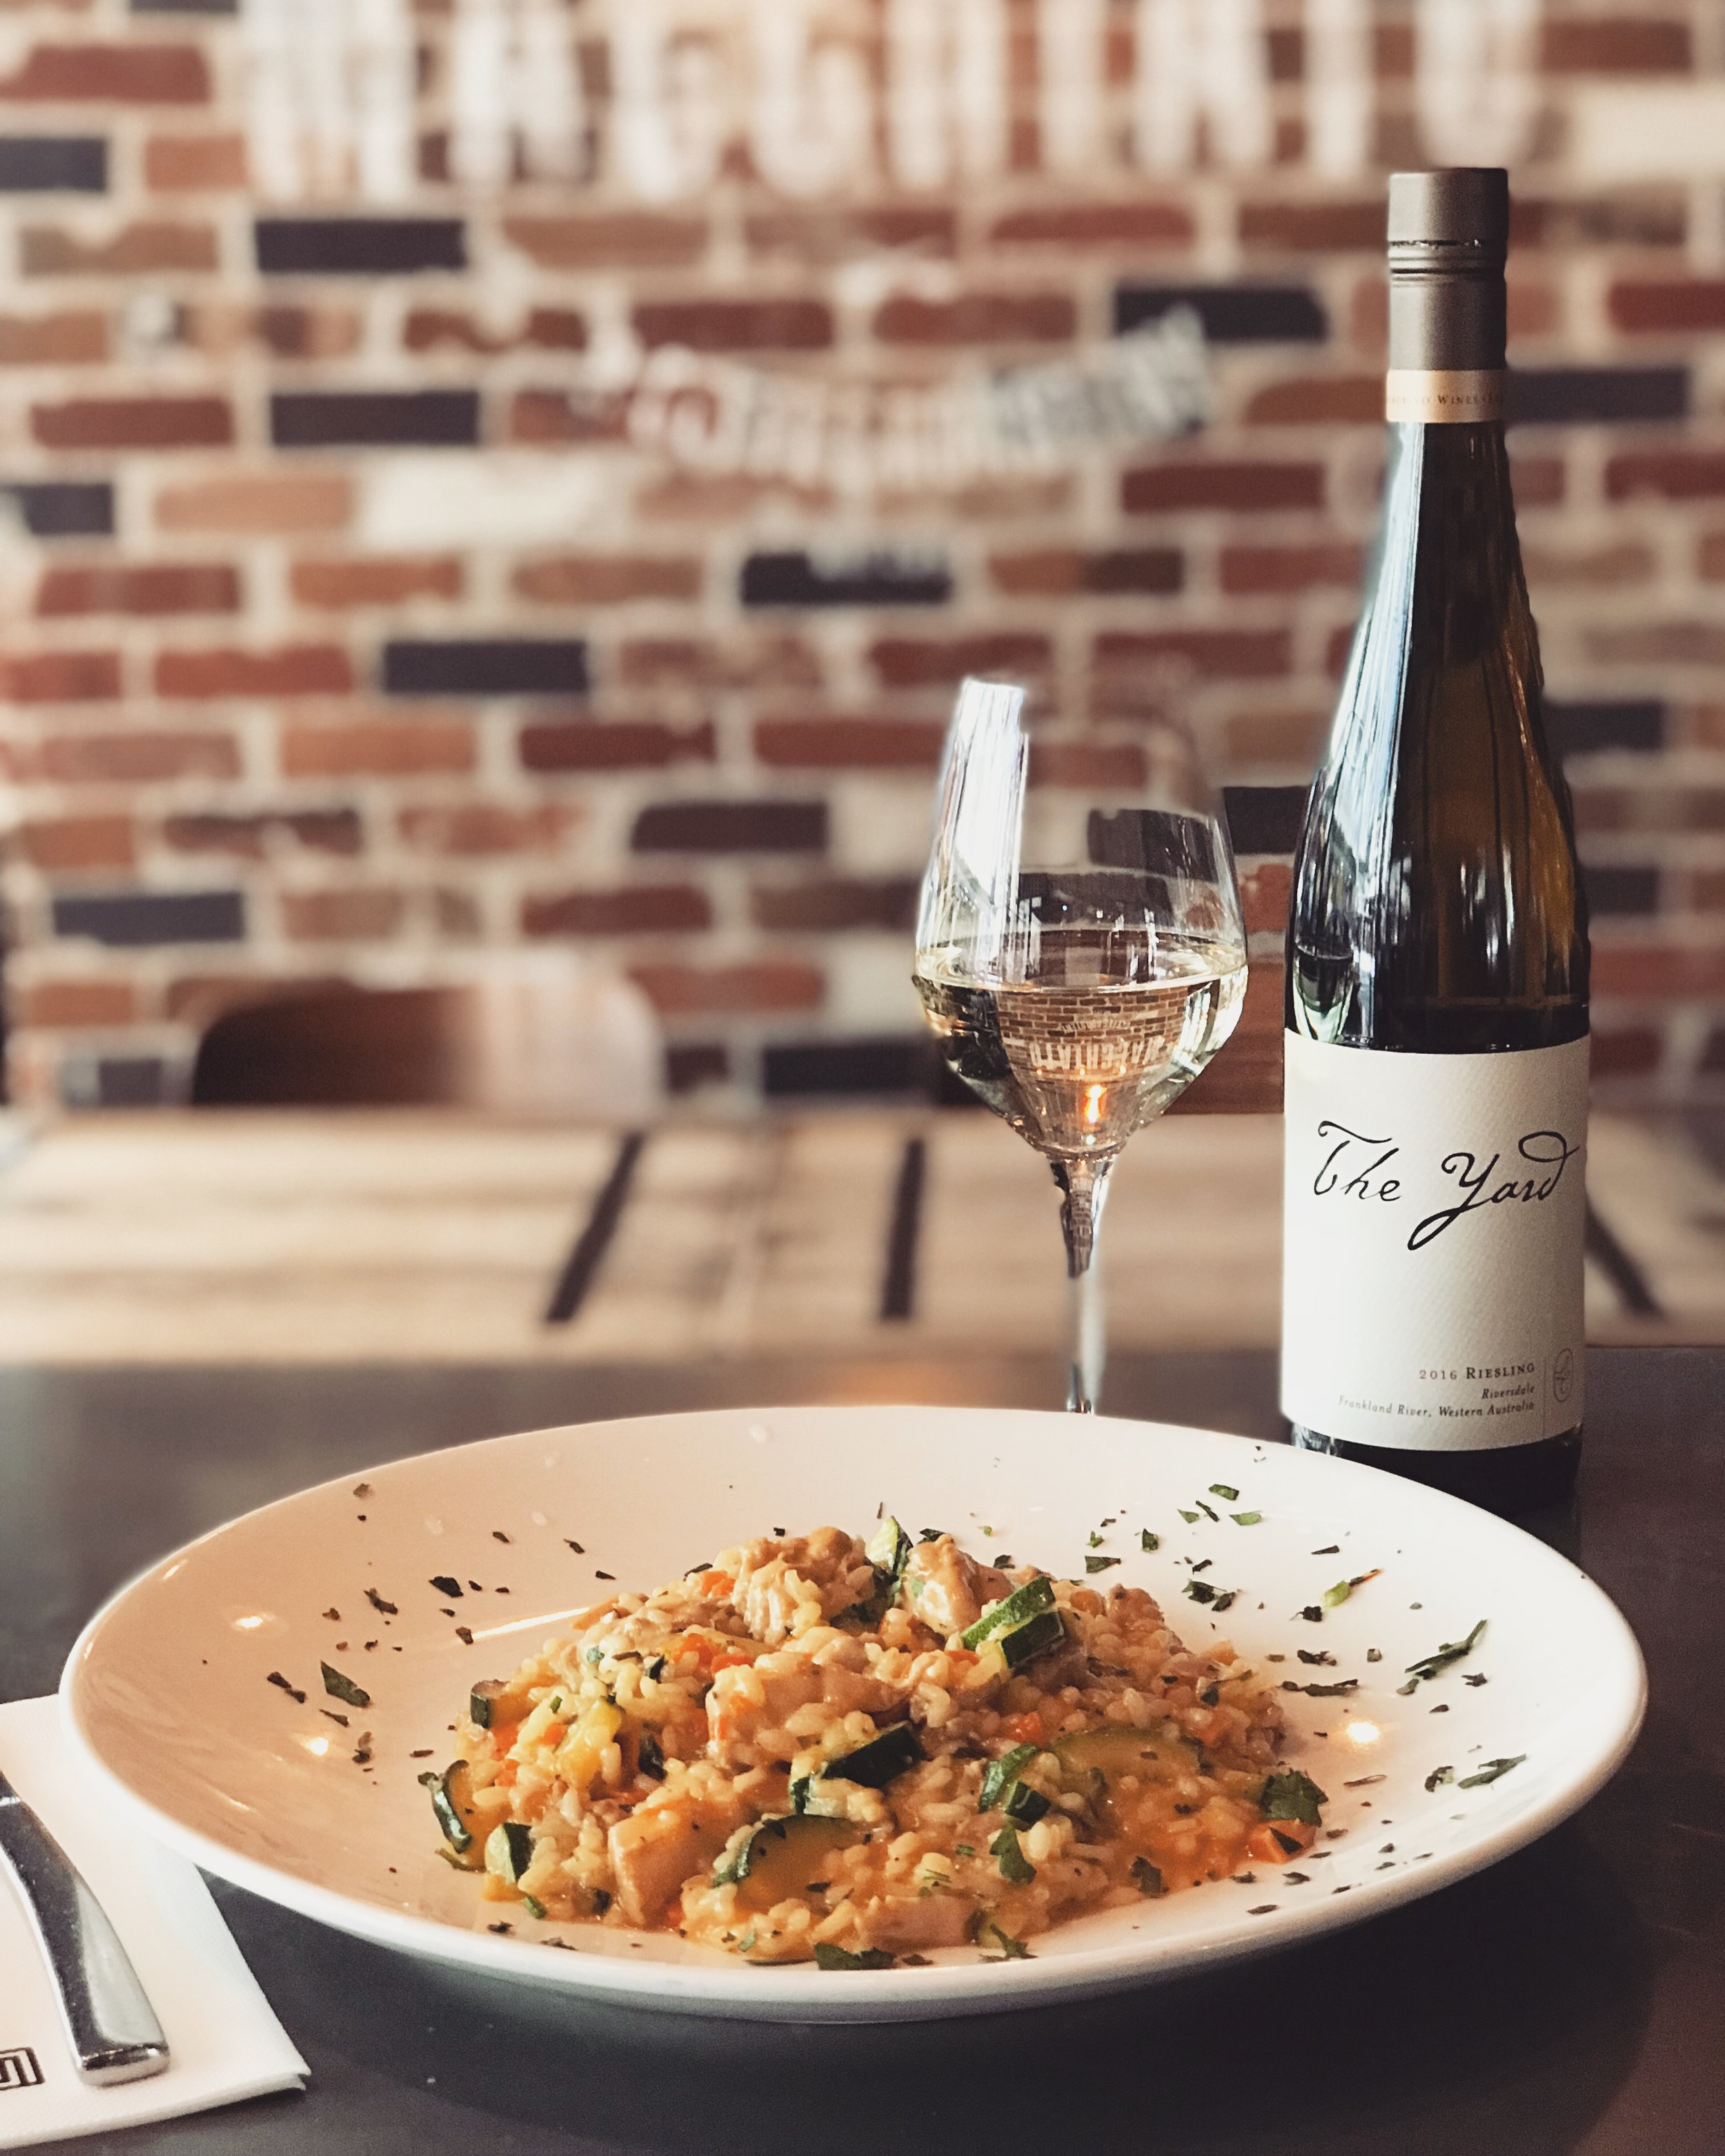 13-19 December - Zucchini and saffron risotto with slow cooked chicken thighs, parsley and olive oil.Recommended with a glass of our 'The yard' Riesling.